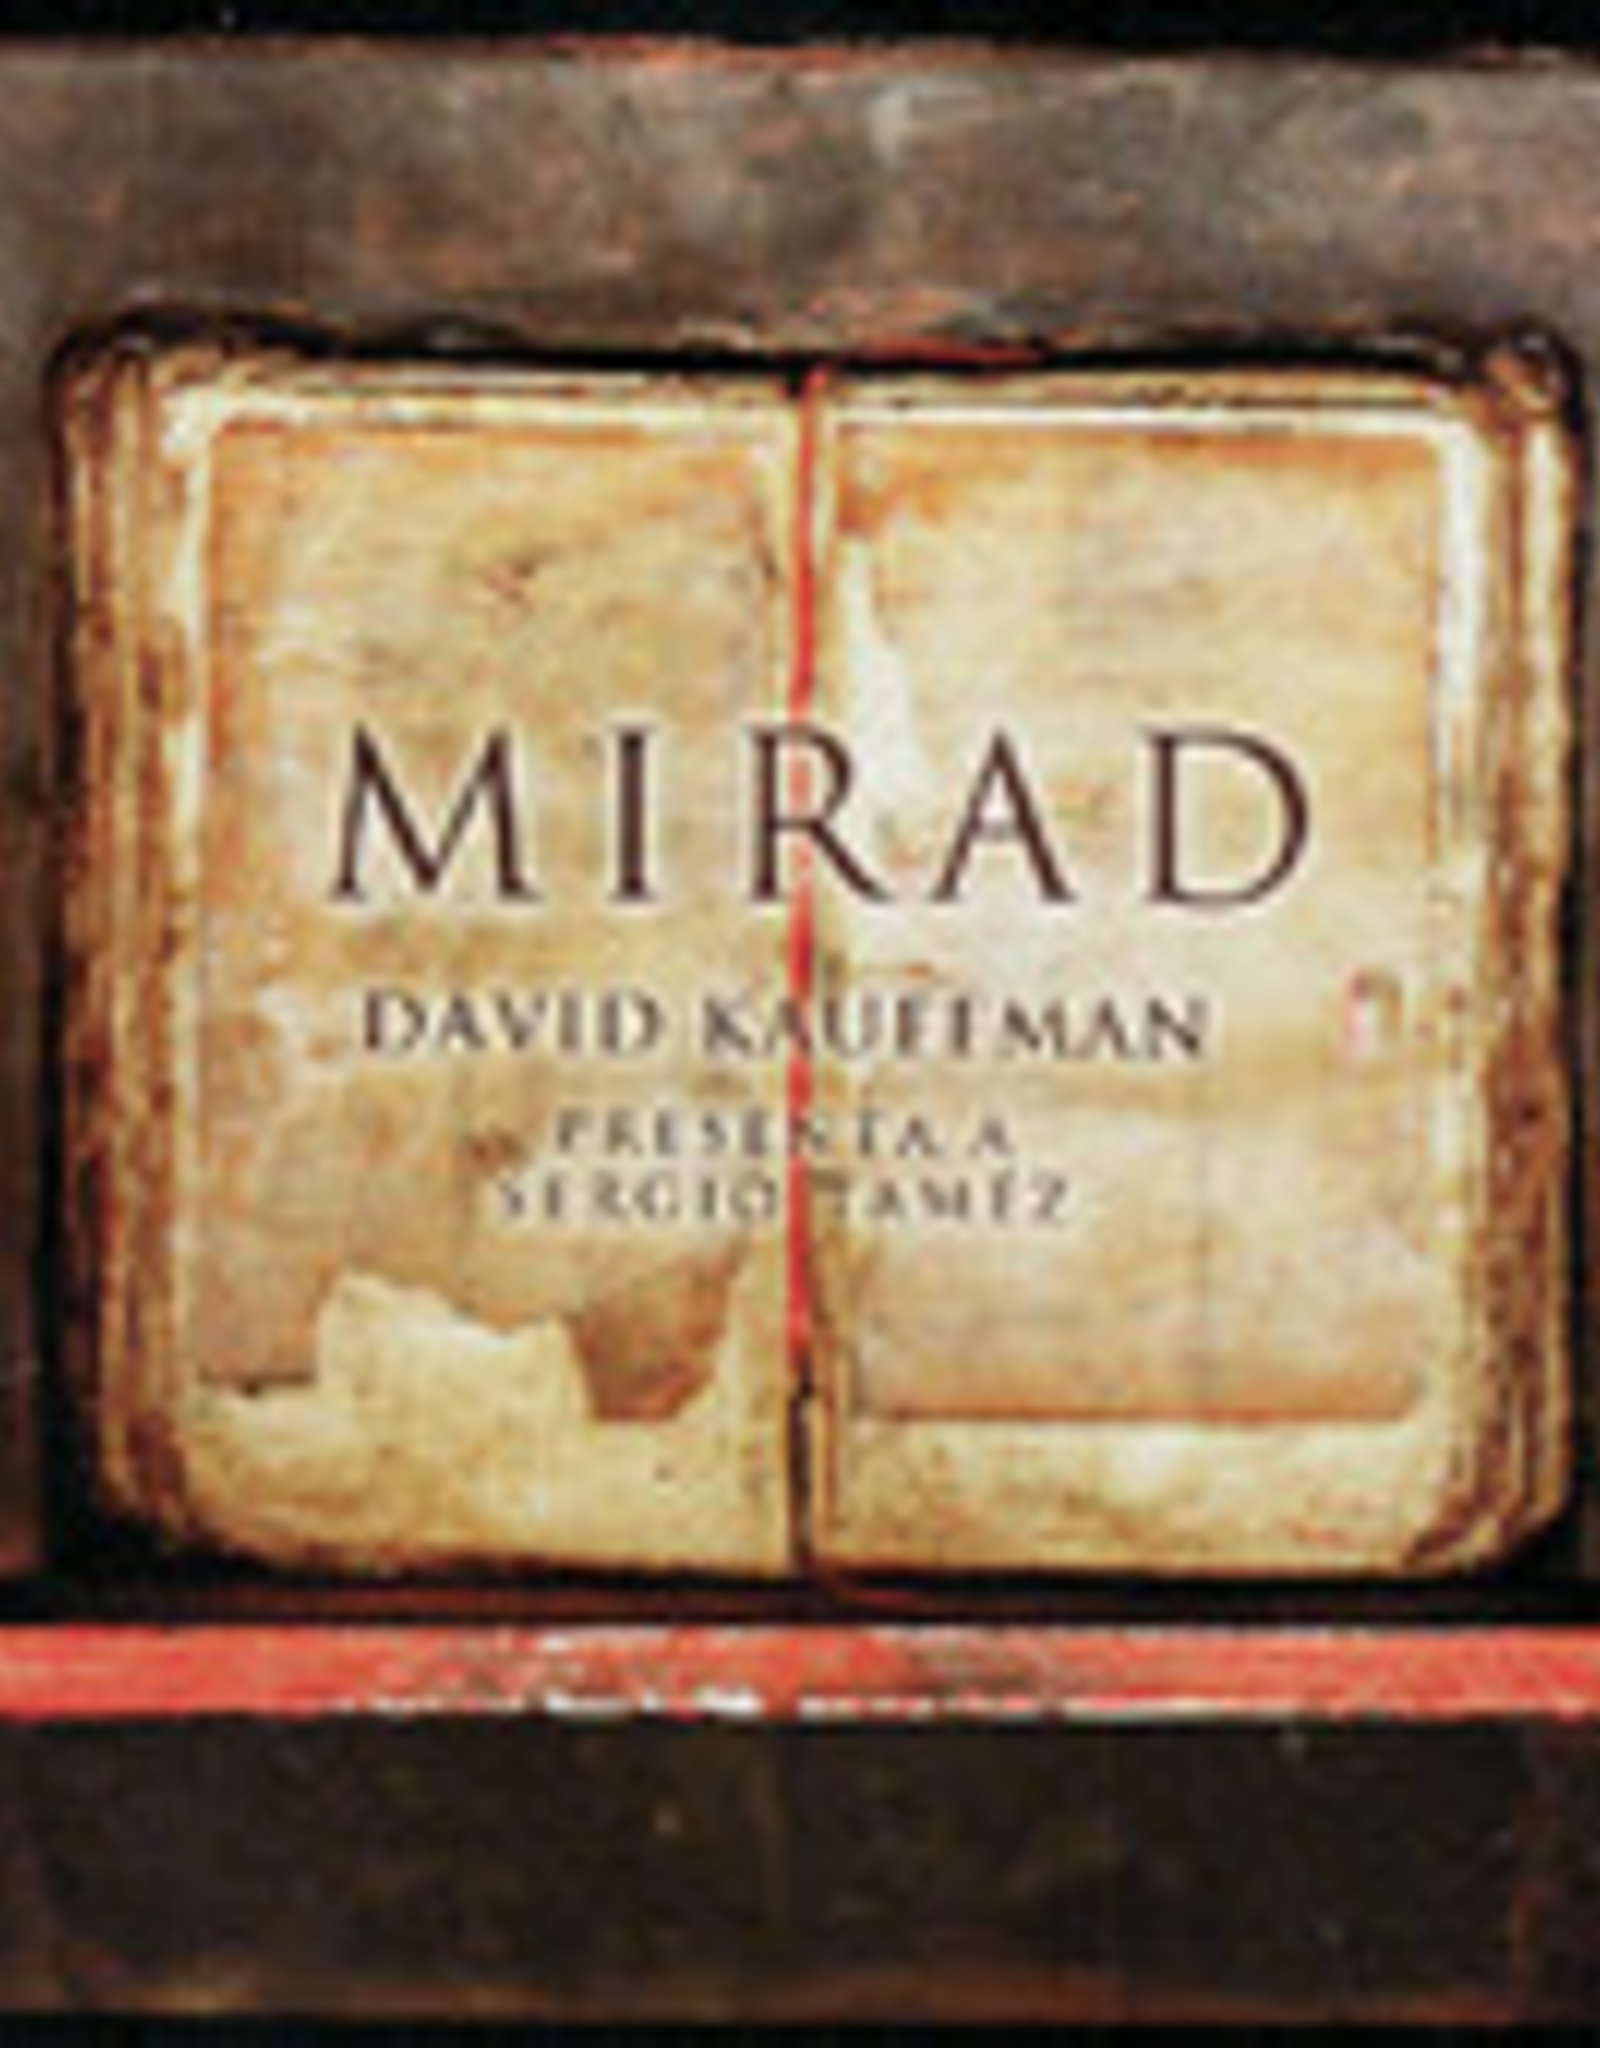 Good For The Soul Music Mirad, by David Kauffmanc (en espanol)